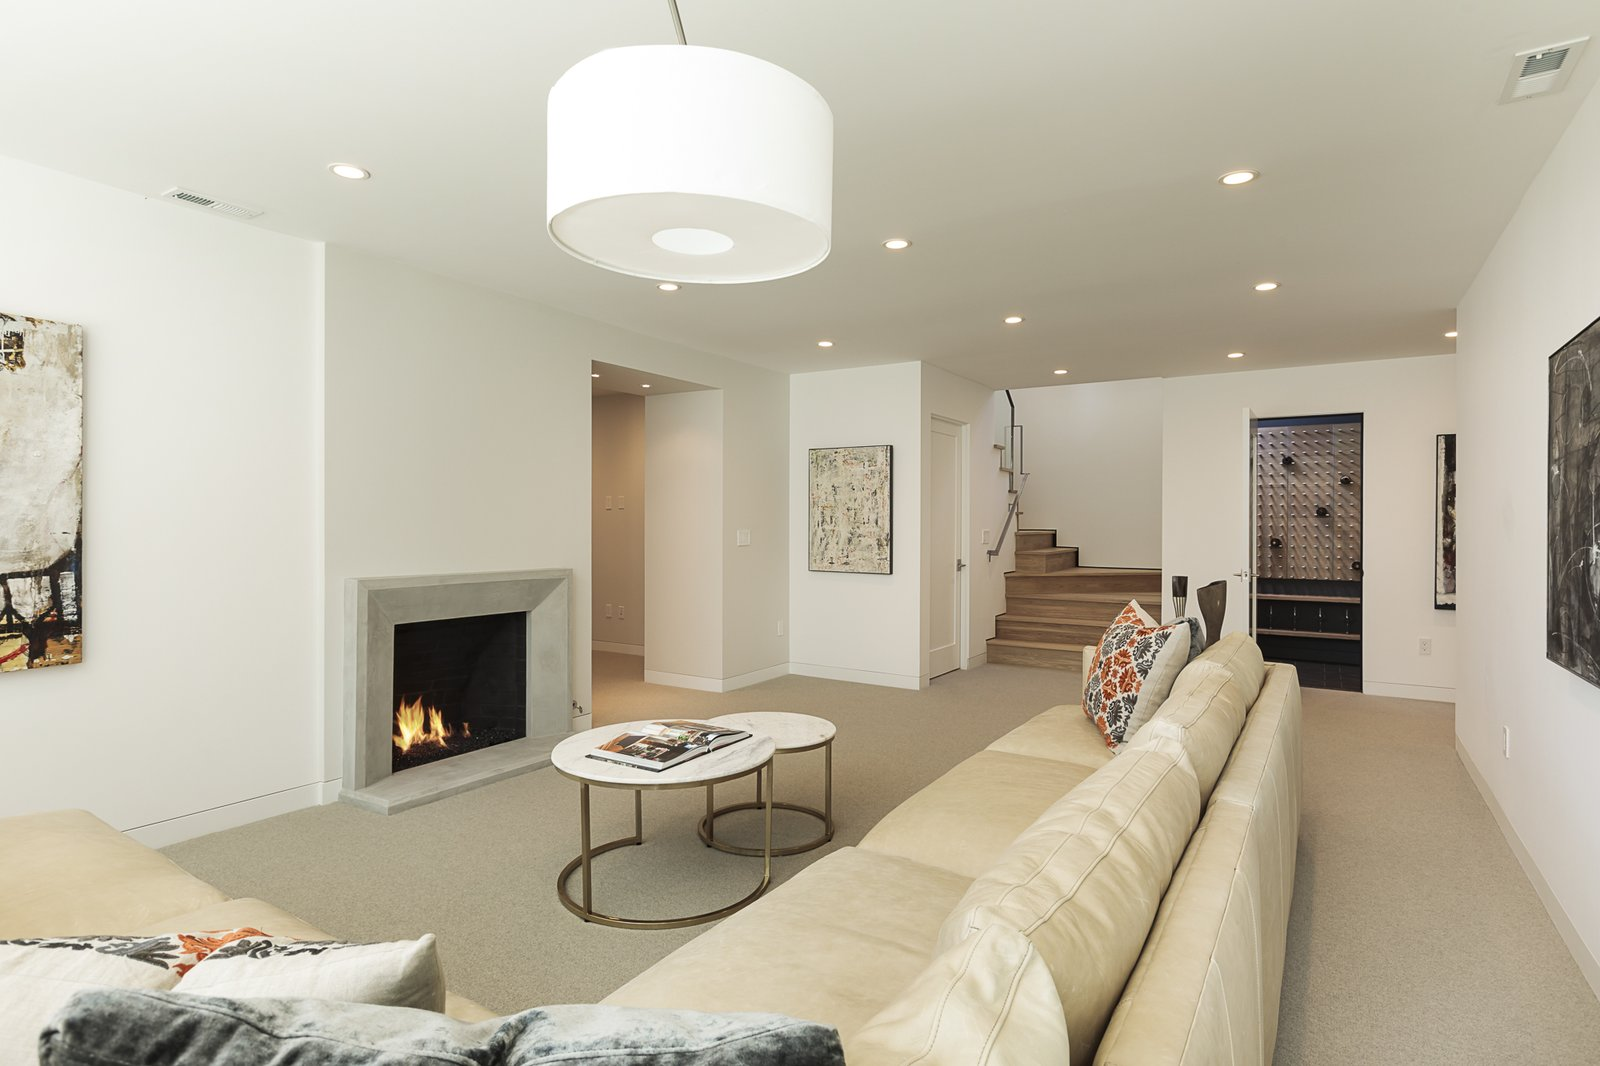 Living Room, Sectional, Coffee Tables, Recessed Lighting, Floor Lighting, Carpet Floor, and Standard Layout Fireplace This view shows the space from another angle. The door at the bottom of the staircase leads to the laundry area. The door to the right of the staircase goes to a modern wine cellar with a sleek mounted wine rack from Stact.   Photo 23 of 24 in An Iconic Portland Midcentury Is Seeking a New Owner For $1.6M